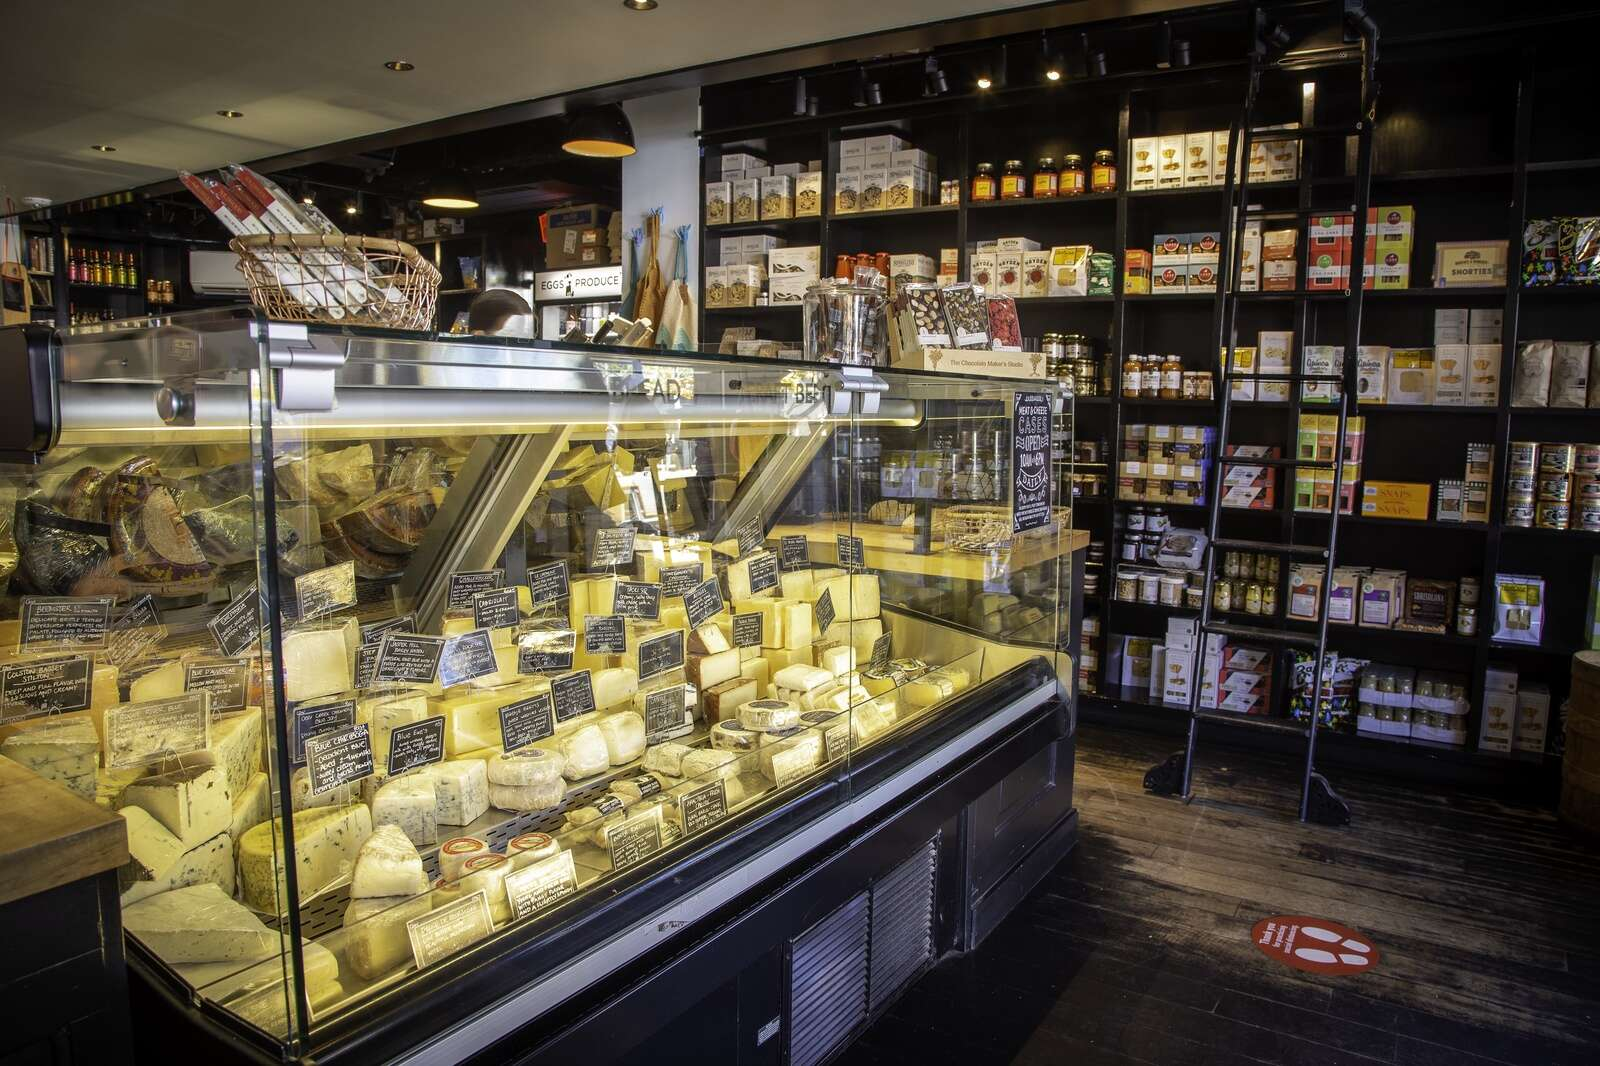 Meat & Cheese Farm Shop offers Aspen's most curated selection of cheeses from America and the world, plus butchered meats from western Colorado and other gourmet groceries.